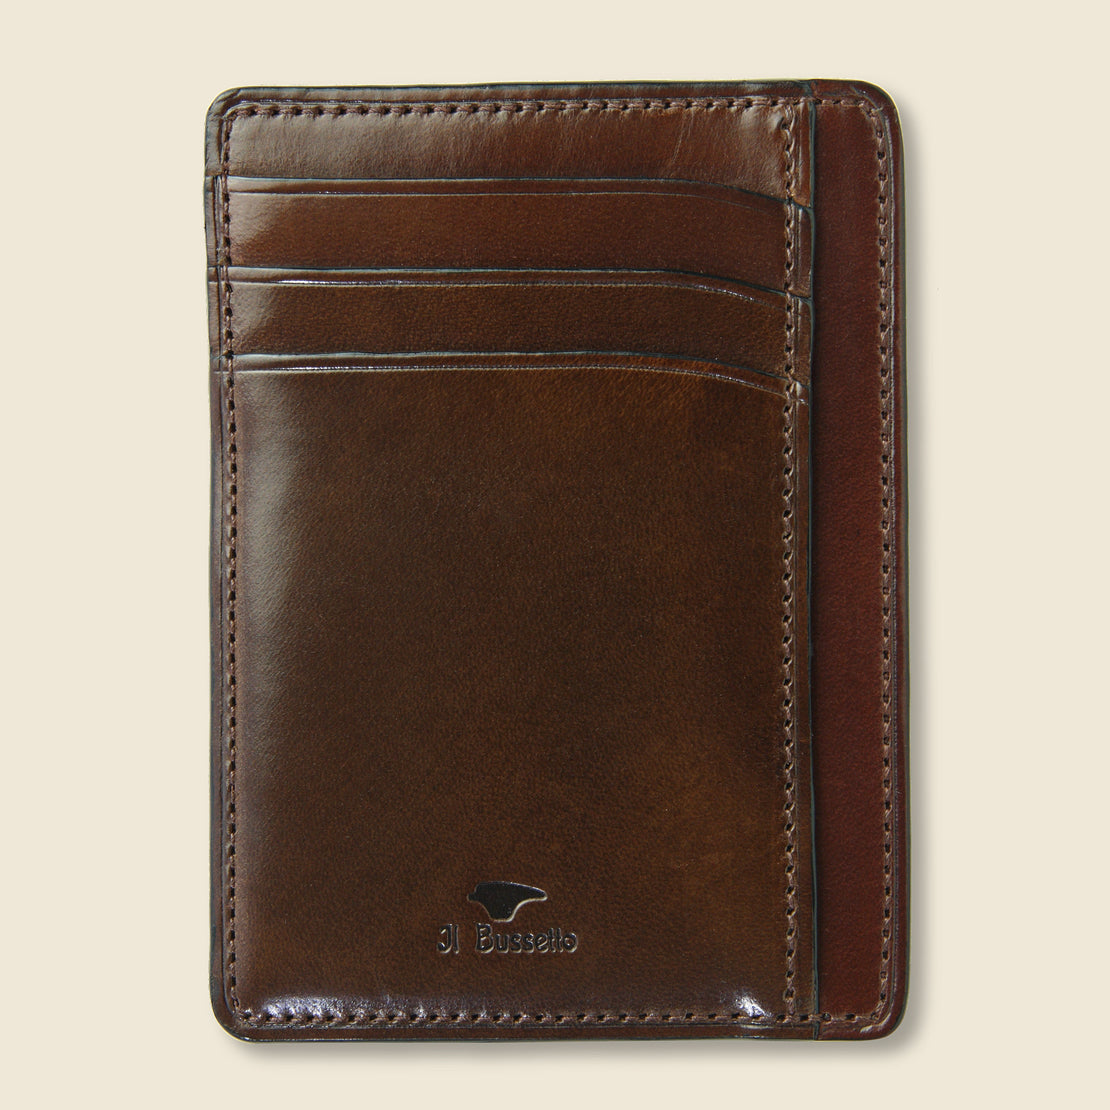 Il Bussetto Card and Document Case - Dark Brown